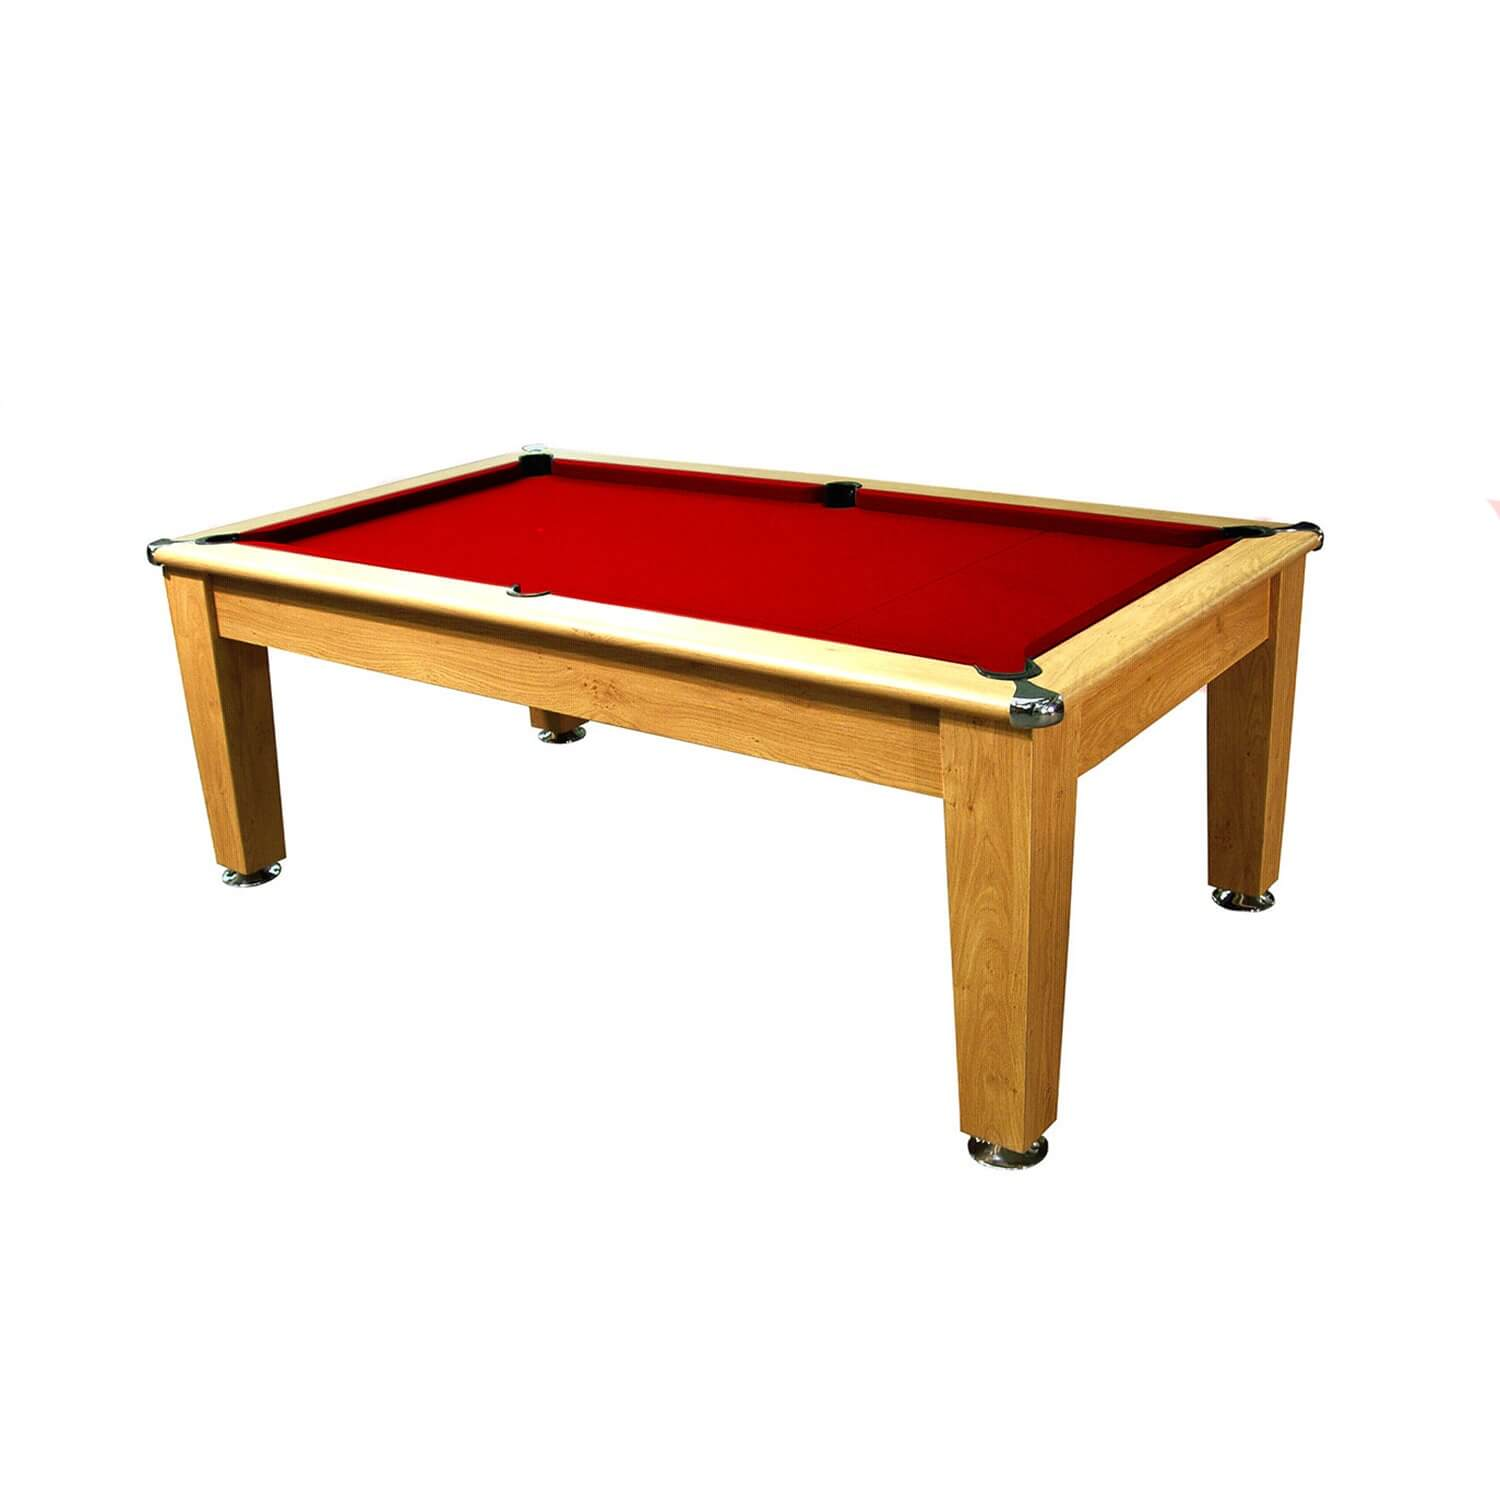 Roma slate bed pool dining table 6 ft 7 ft liberty games for Table 6 feet